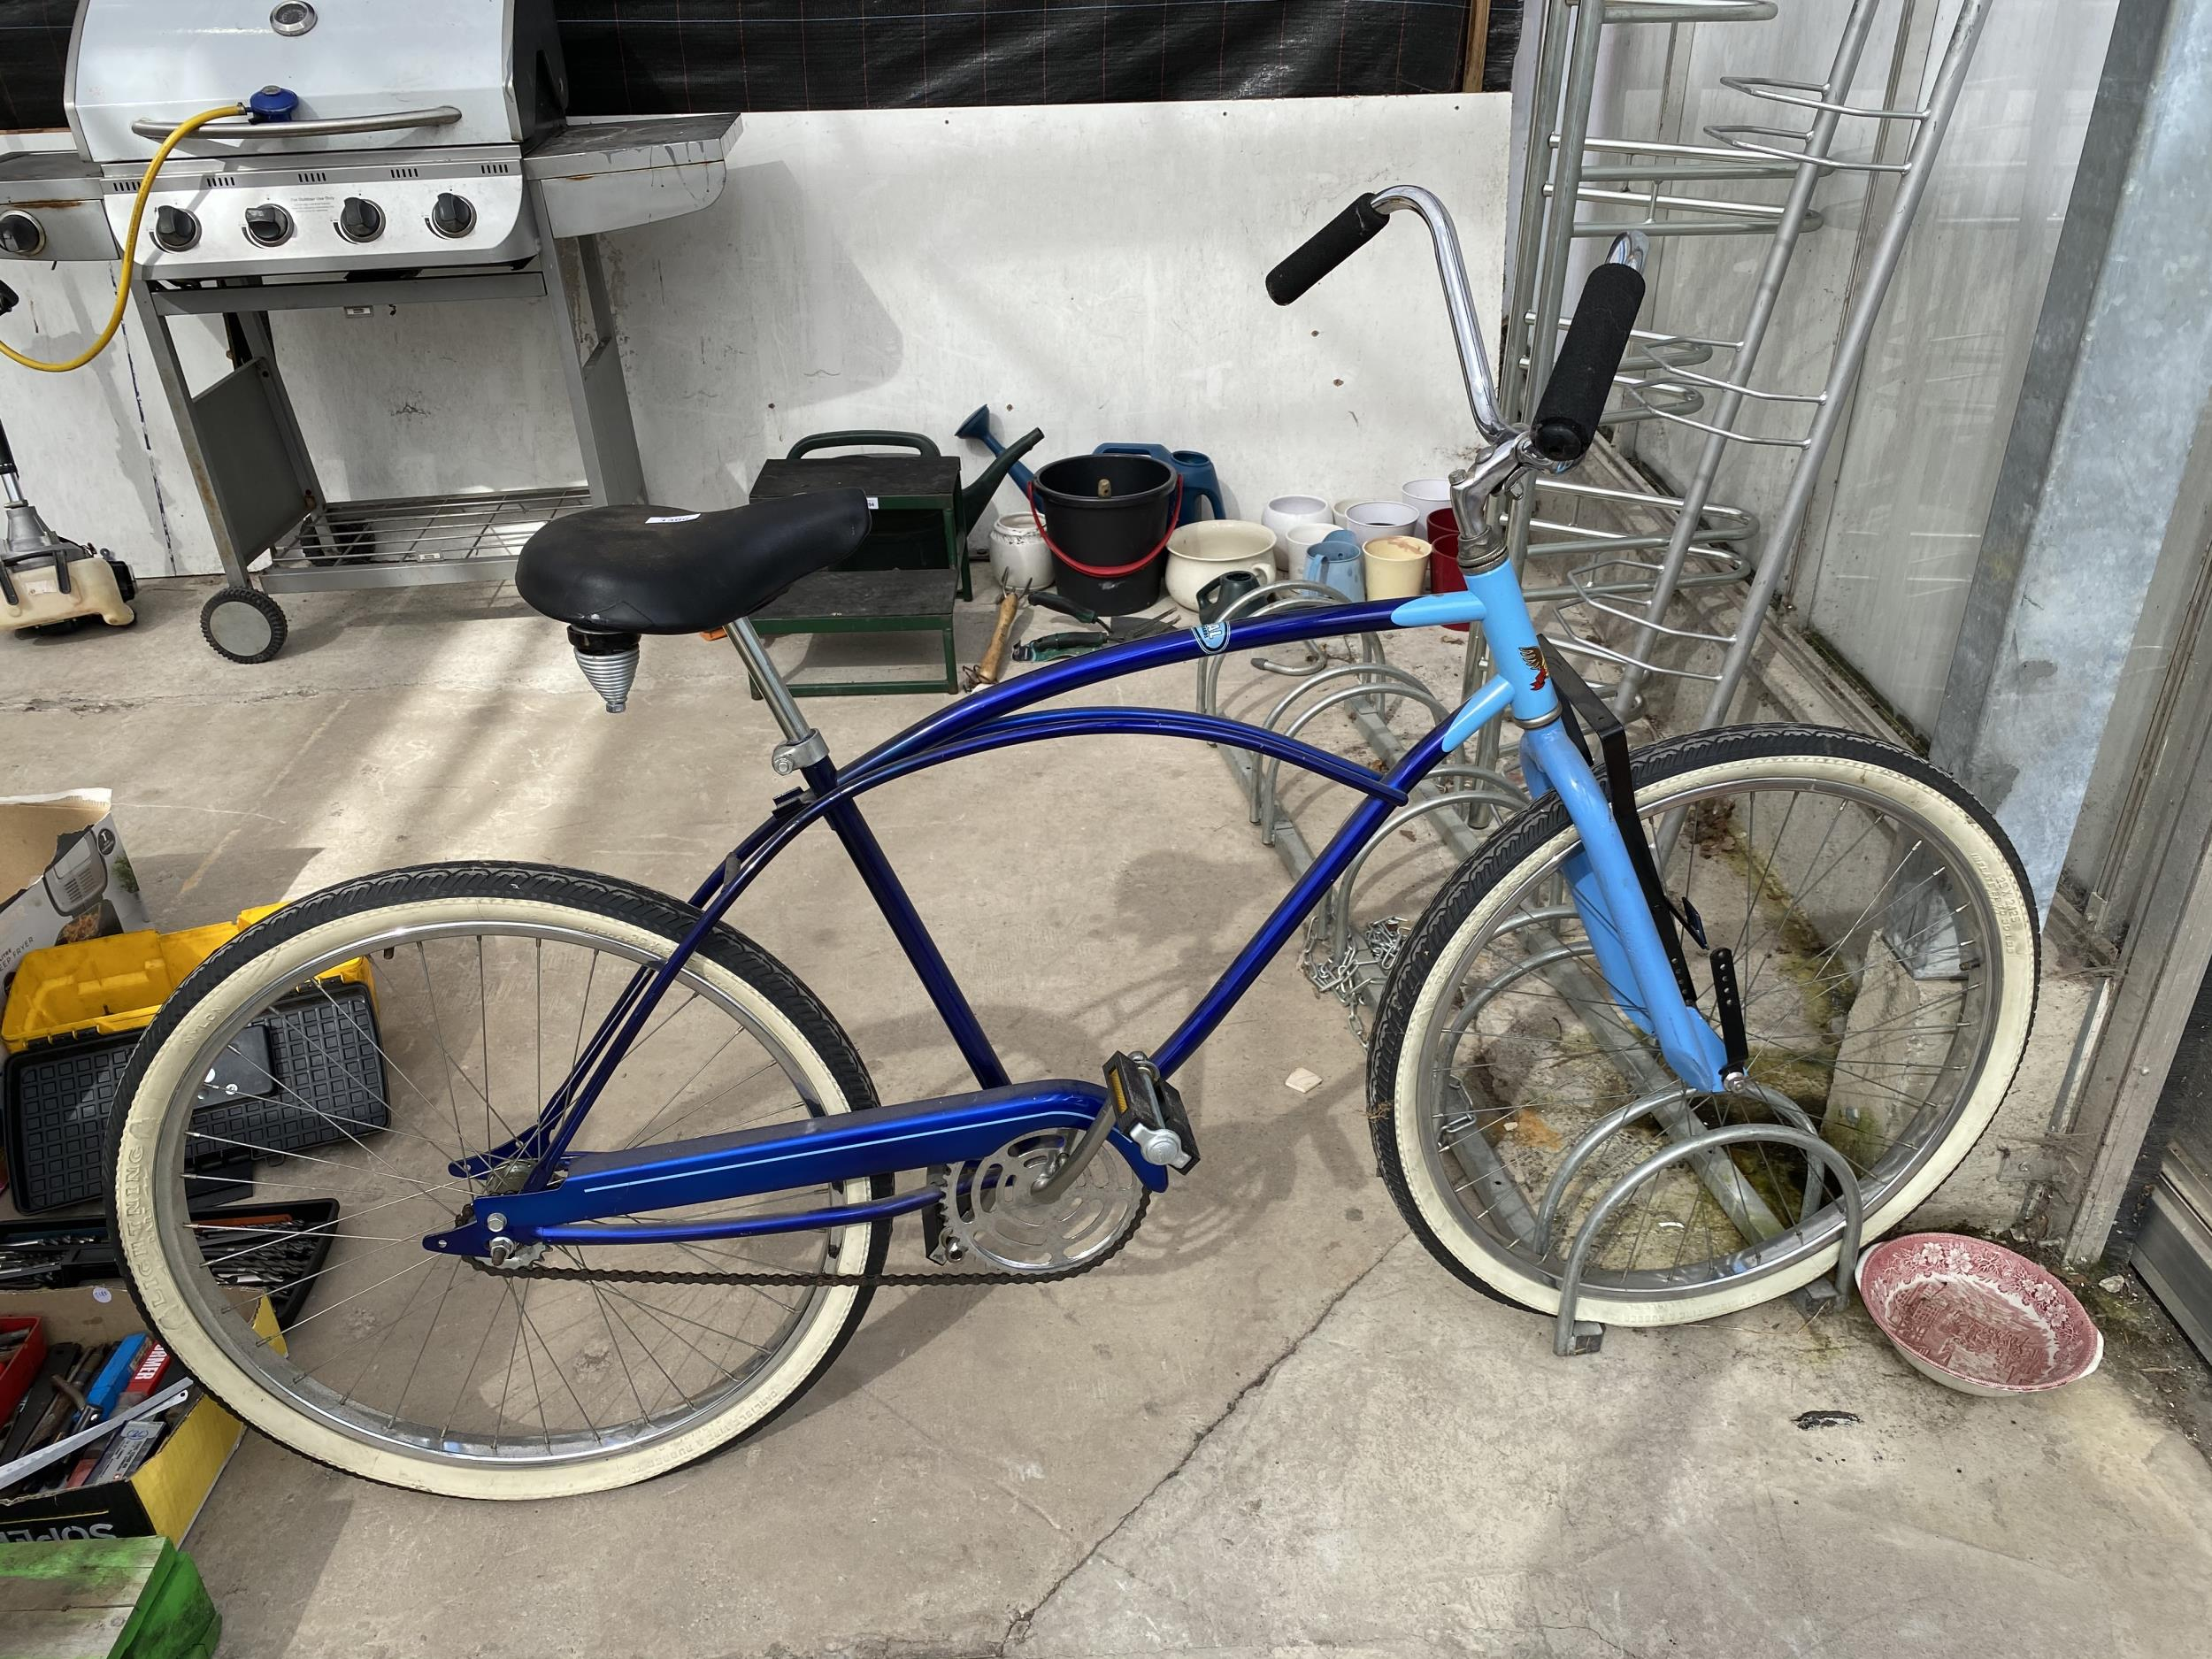 A VINTAGE MURRAY BICYCLE WITH THE SERIAL NUMBER M025022 39